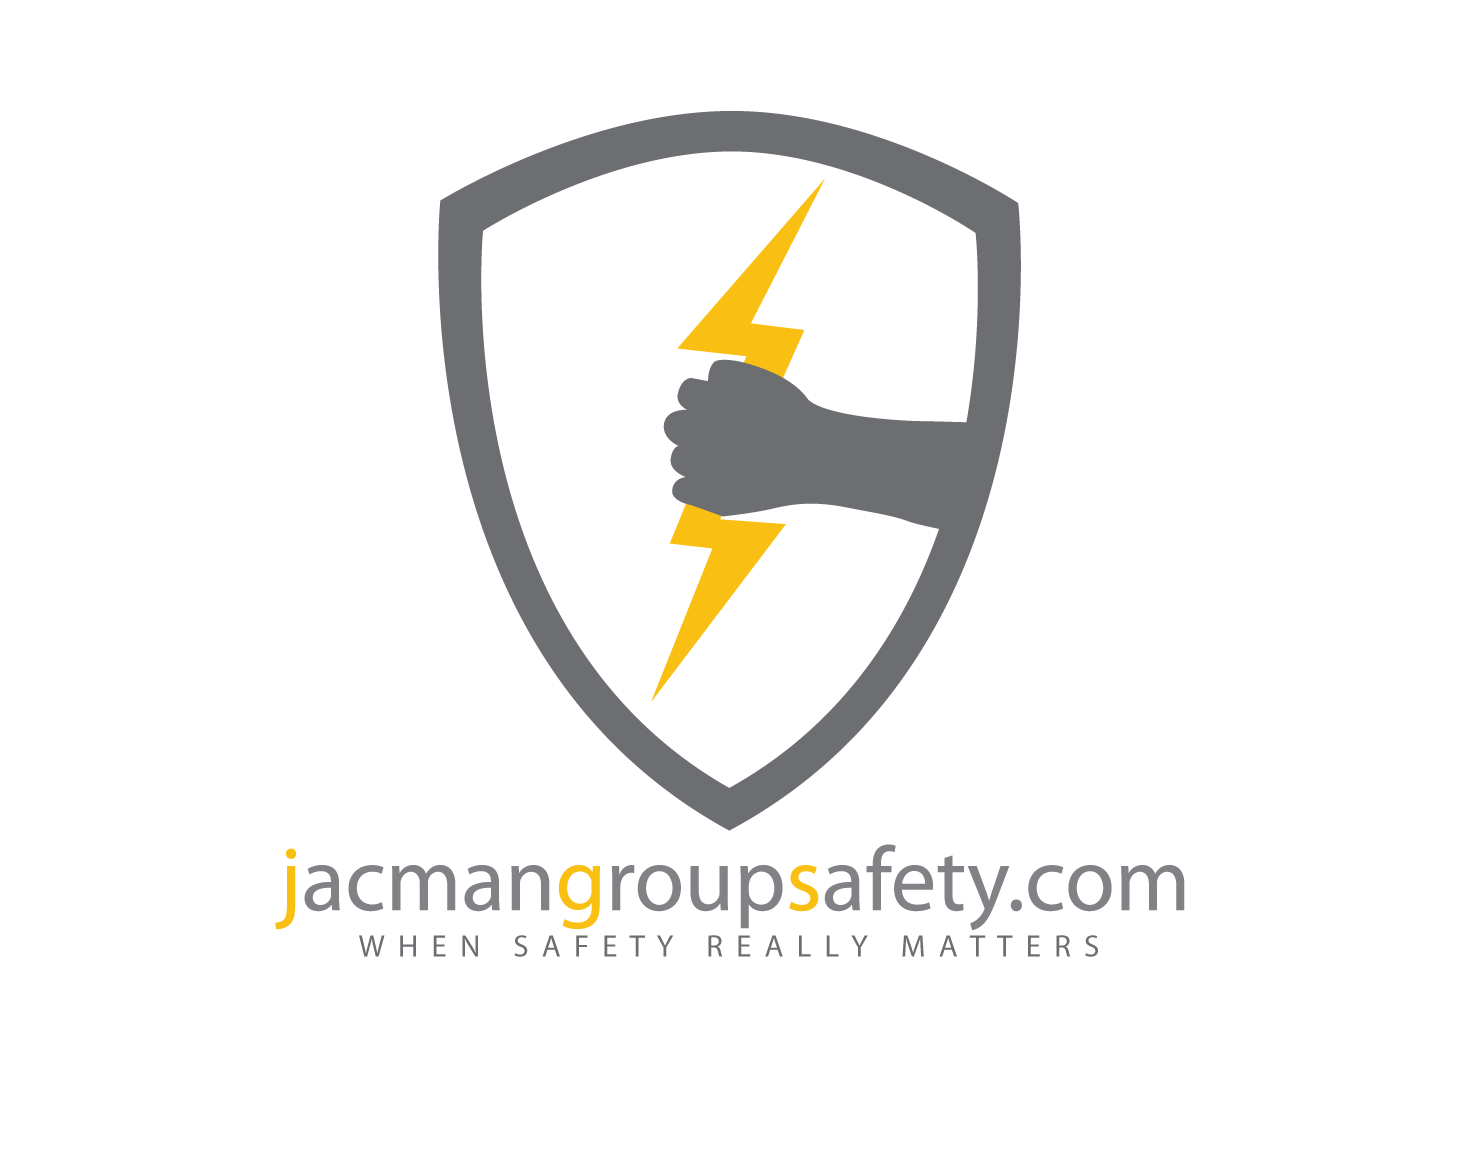 Logo Design Contests » The Jacman Group Logo Design » Design No ...